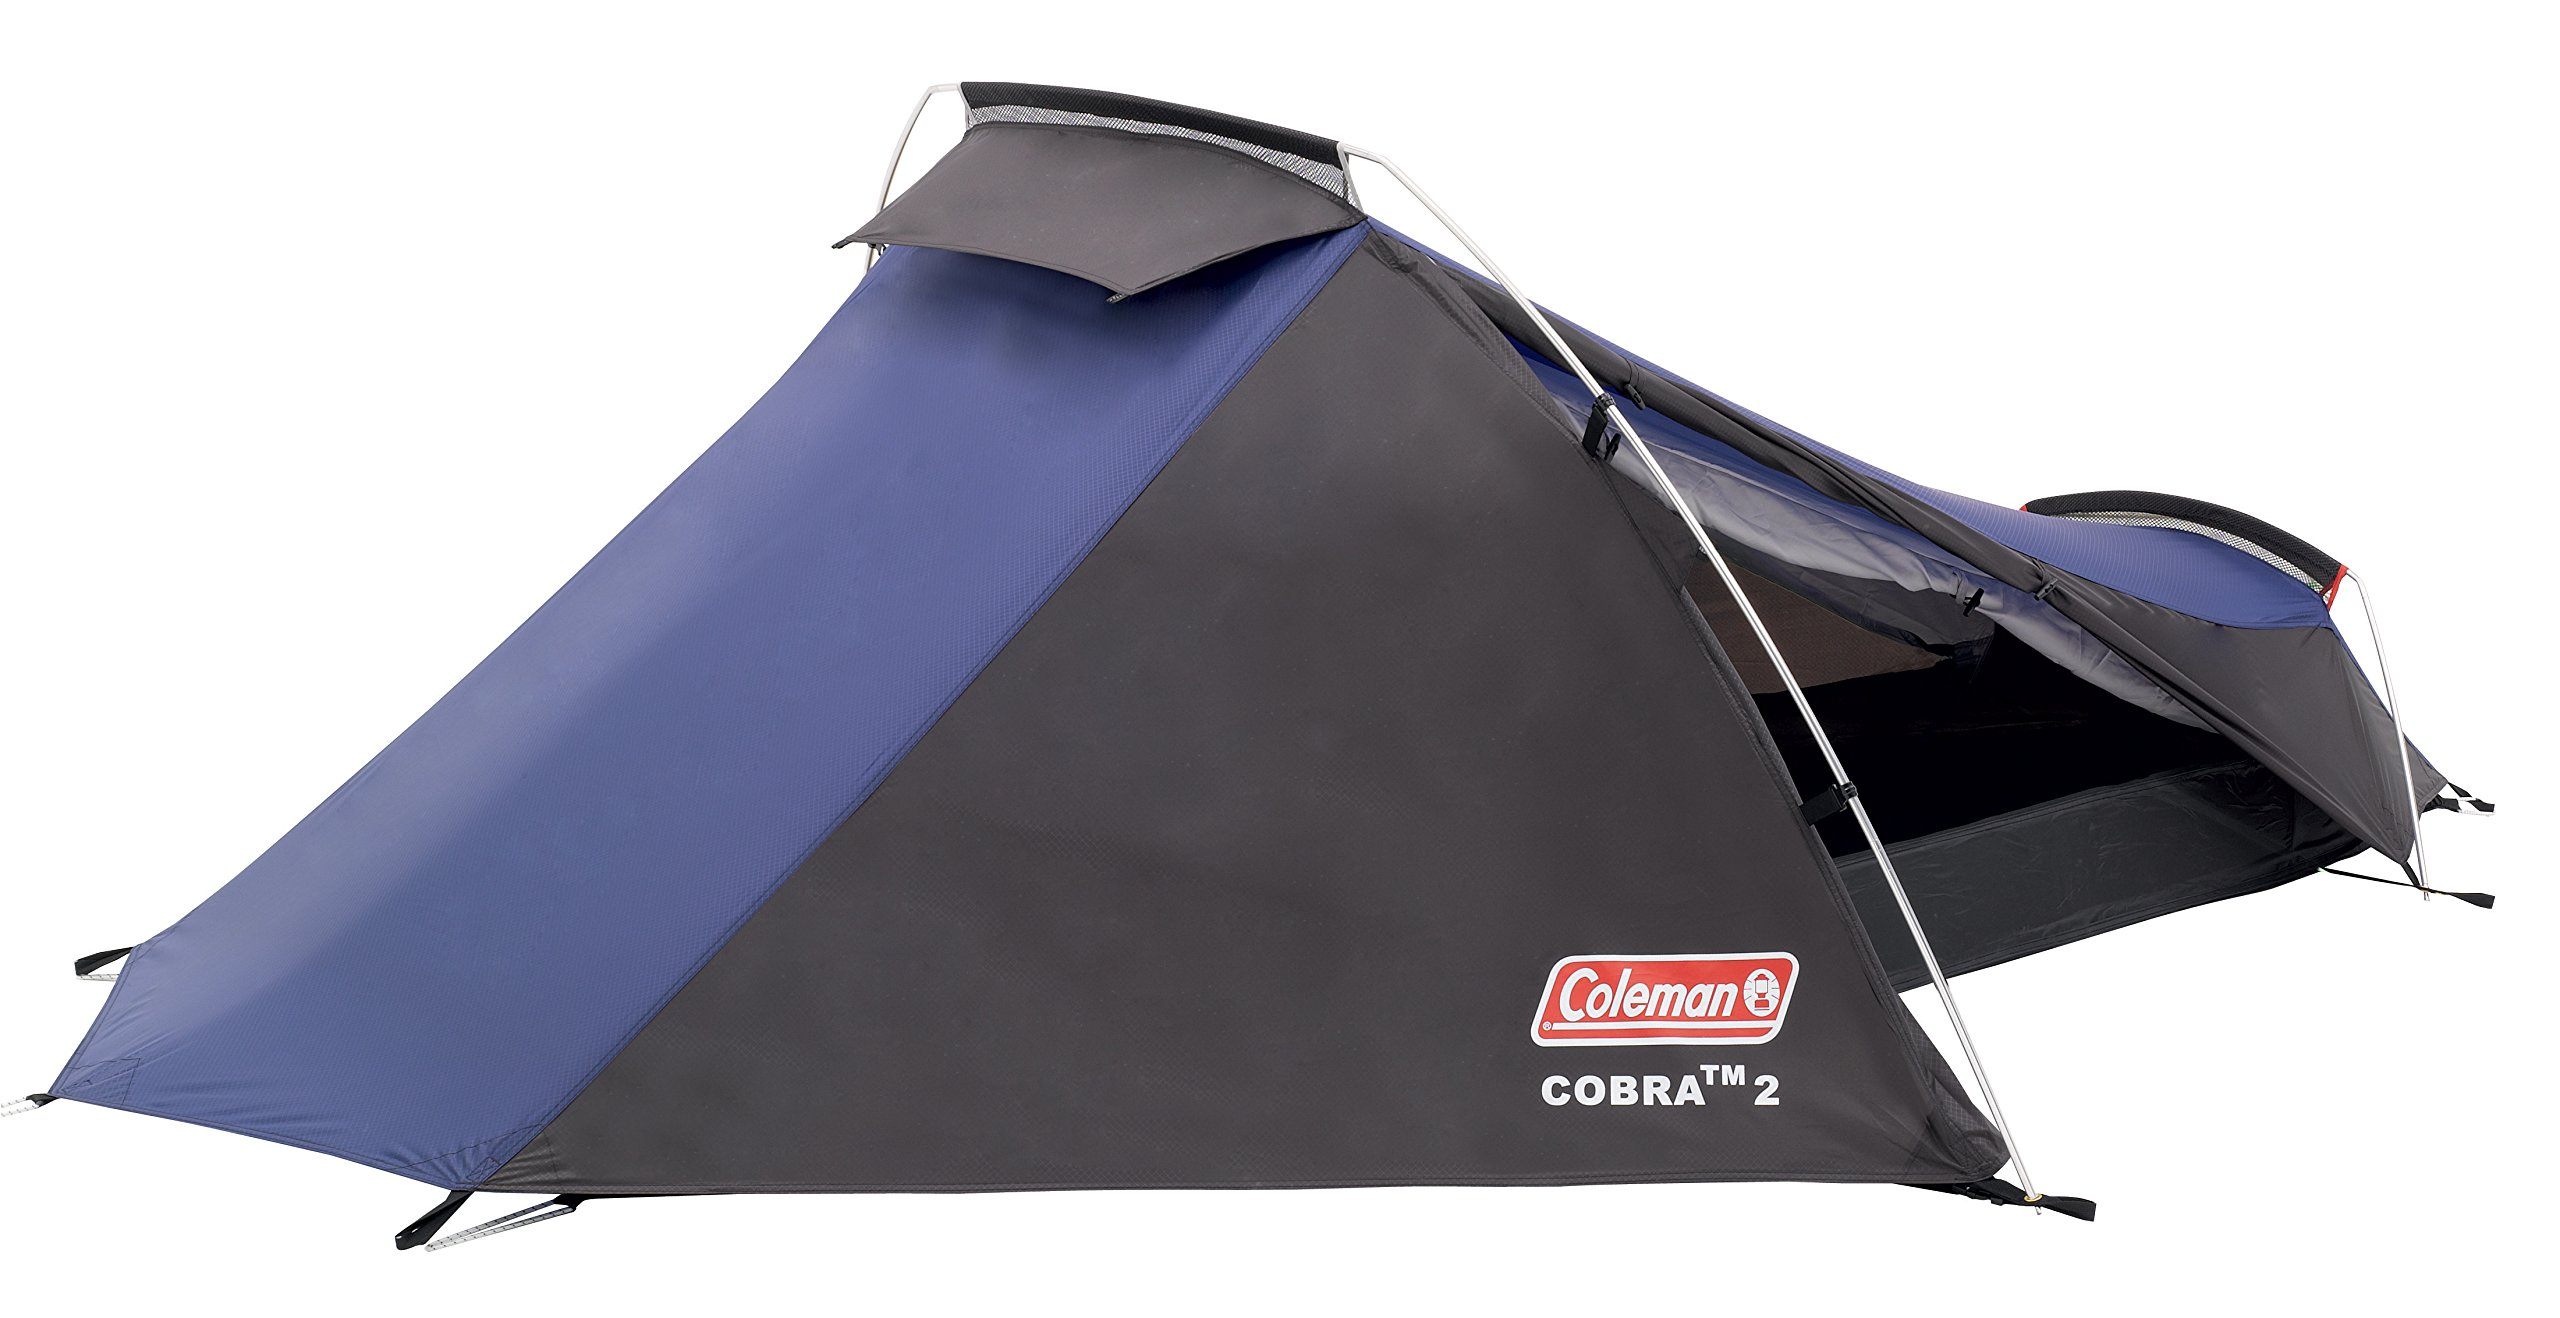 Coleman Cobra 2 Tent for Trekking Tours, Camping or Festivals, Small Pack Size, Fits in a Backpack, Waterproof HH 3.000… 3